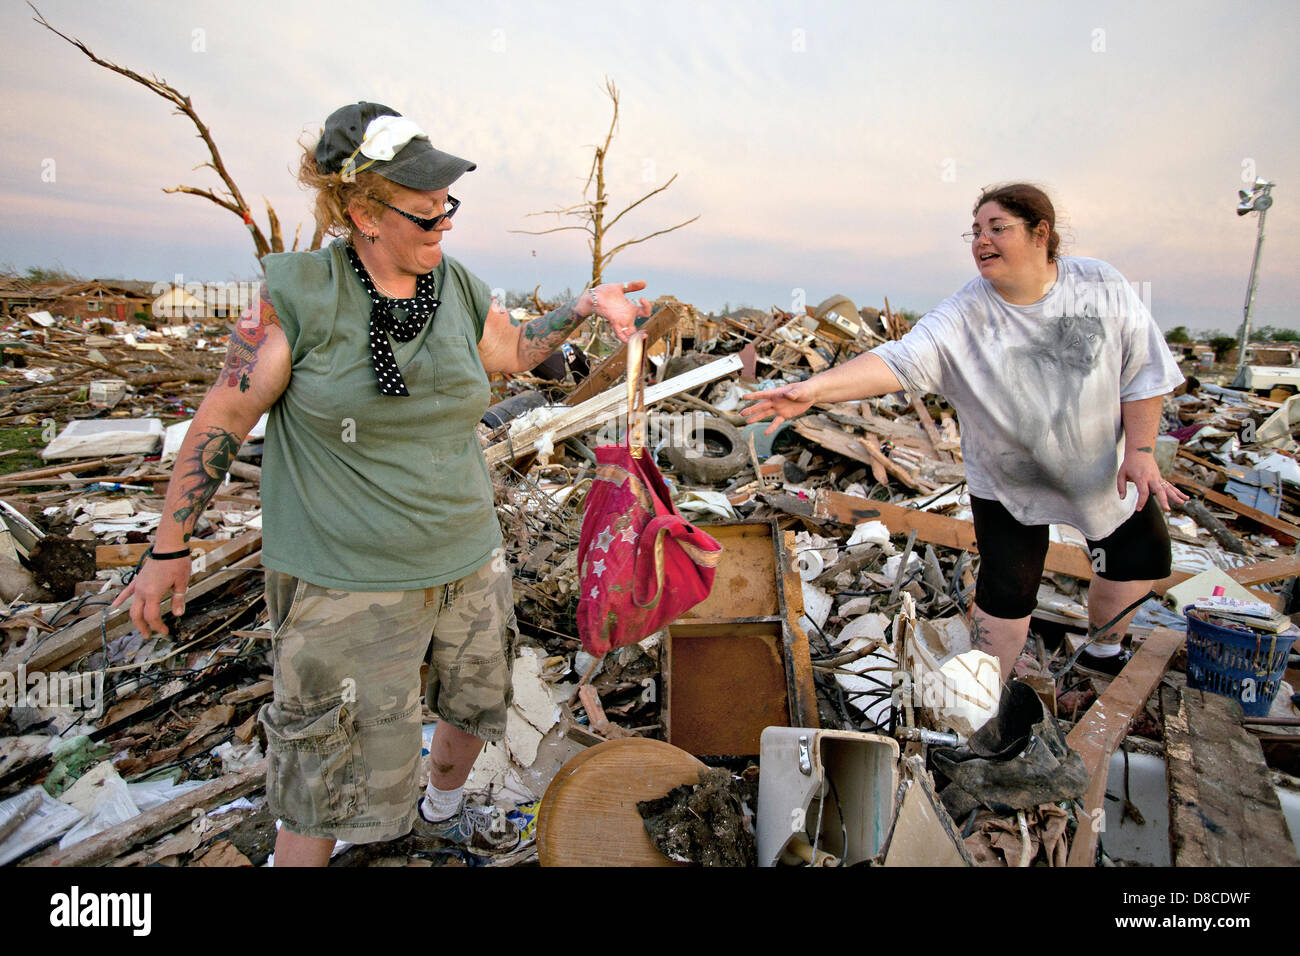 Residents sift through the wreckage of their home in the aftermath of an EF-5 tornado May 22, 2013 in Moore, Oklahoma. - Stock Image